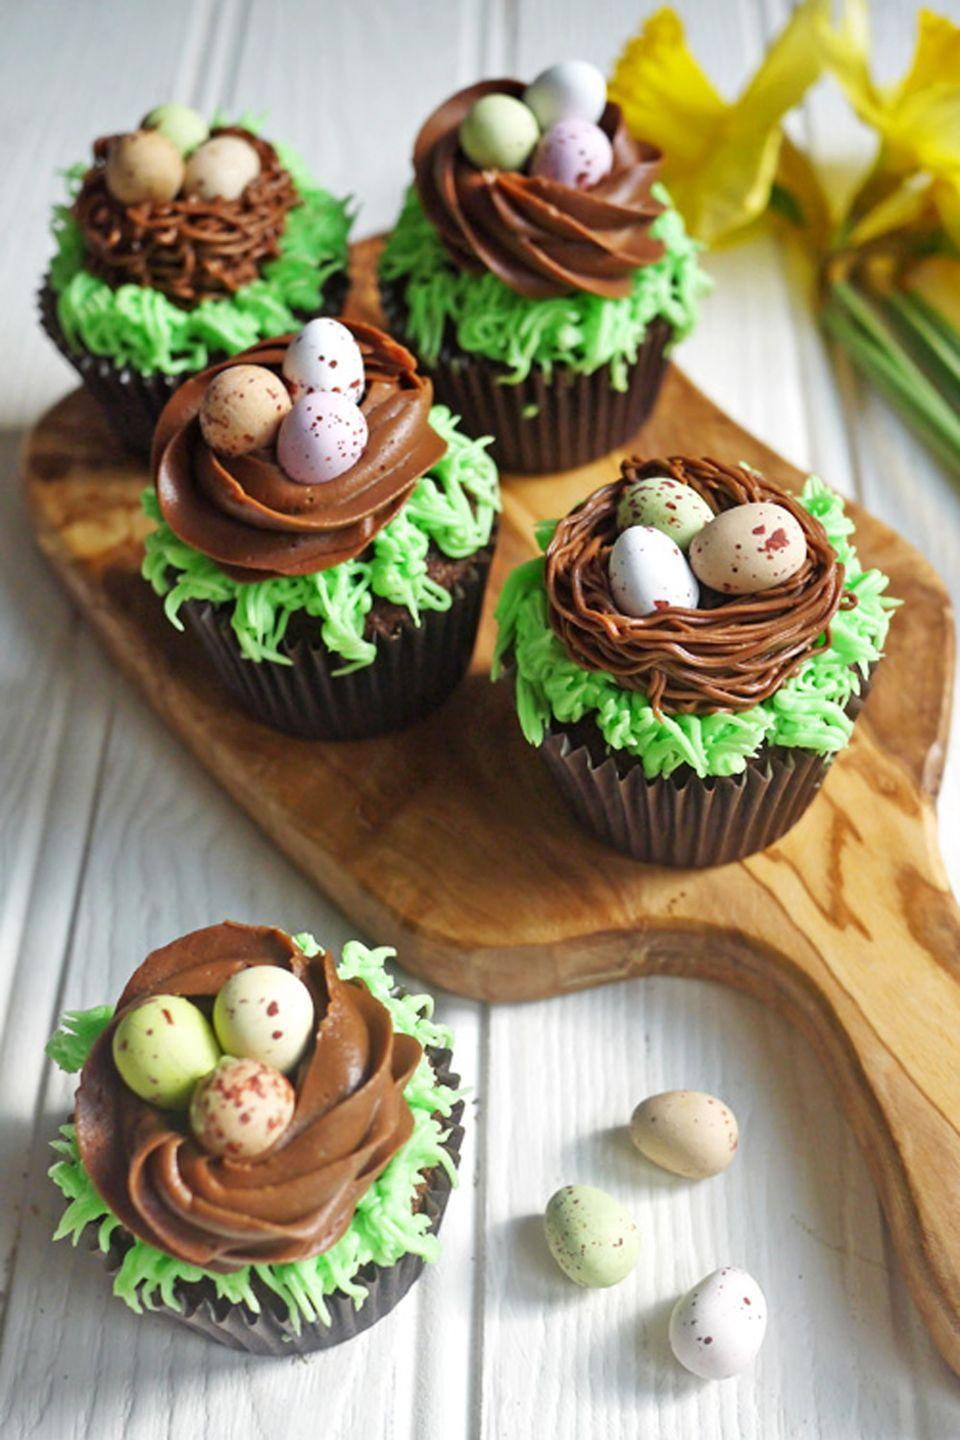 """<p>These cupcakes are layered with chocolate on top of chocolate... on top of <a href=""""https://www.housebeautiful.com/shopping/g1385/gourmet-easter-chocolates-0313/"""" rel=""""nofollow noopener"""" target=""""_blank"""" data-ylk=""""slk:chocolate"""" class=""""link rapid-noclick-resp"""">chocolate</a>. No complaints here. </p><p>Get the full recipe from <a href=""""https://www.tamingtwins.com/easter-chocolate-nest-mini-egg-cupcakes-kids-cooking/"""" rel=""""nofollow noopener"""" target=""""_blank"""" data-ylk=""""slk:Taming Twins"""" class=""""link rapid-noclick-resp"""">Taming Twins</a>.</p>"""